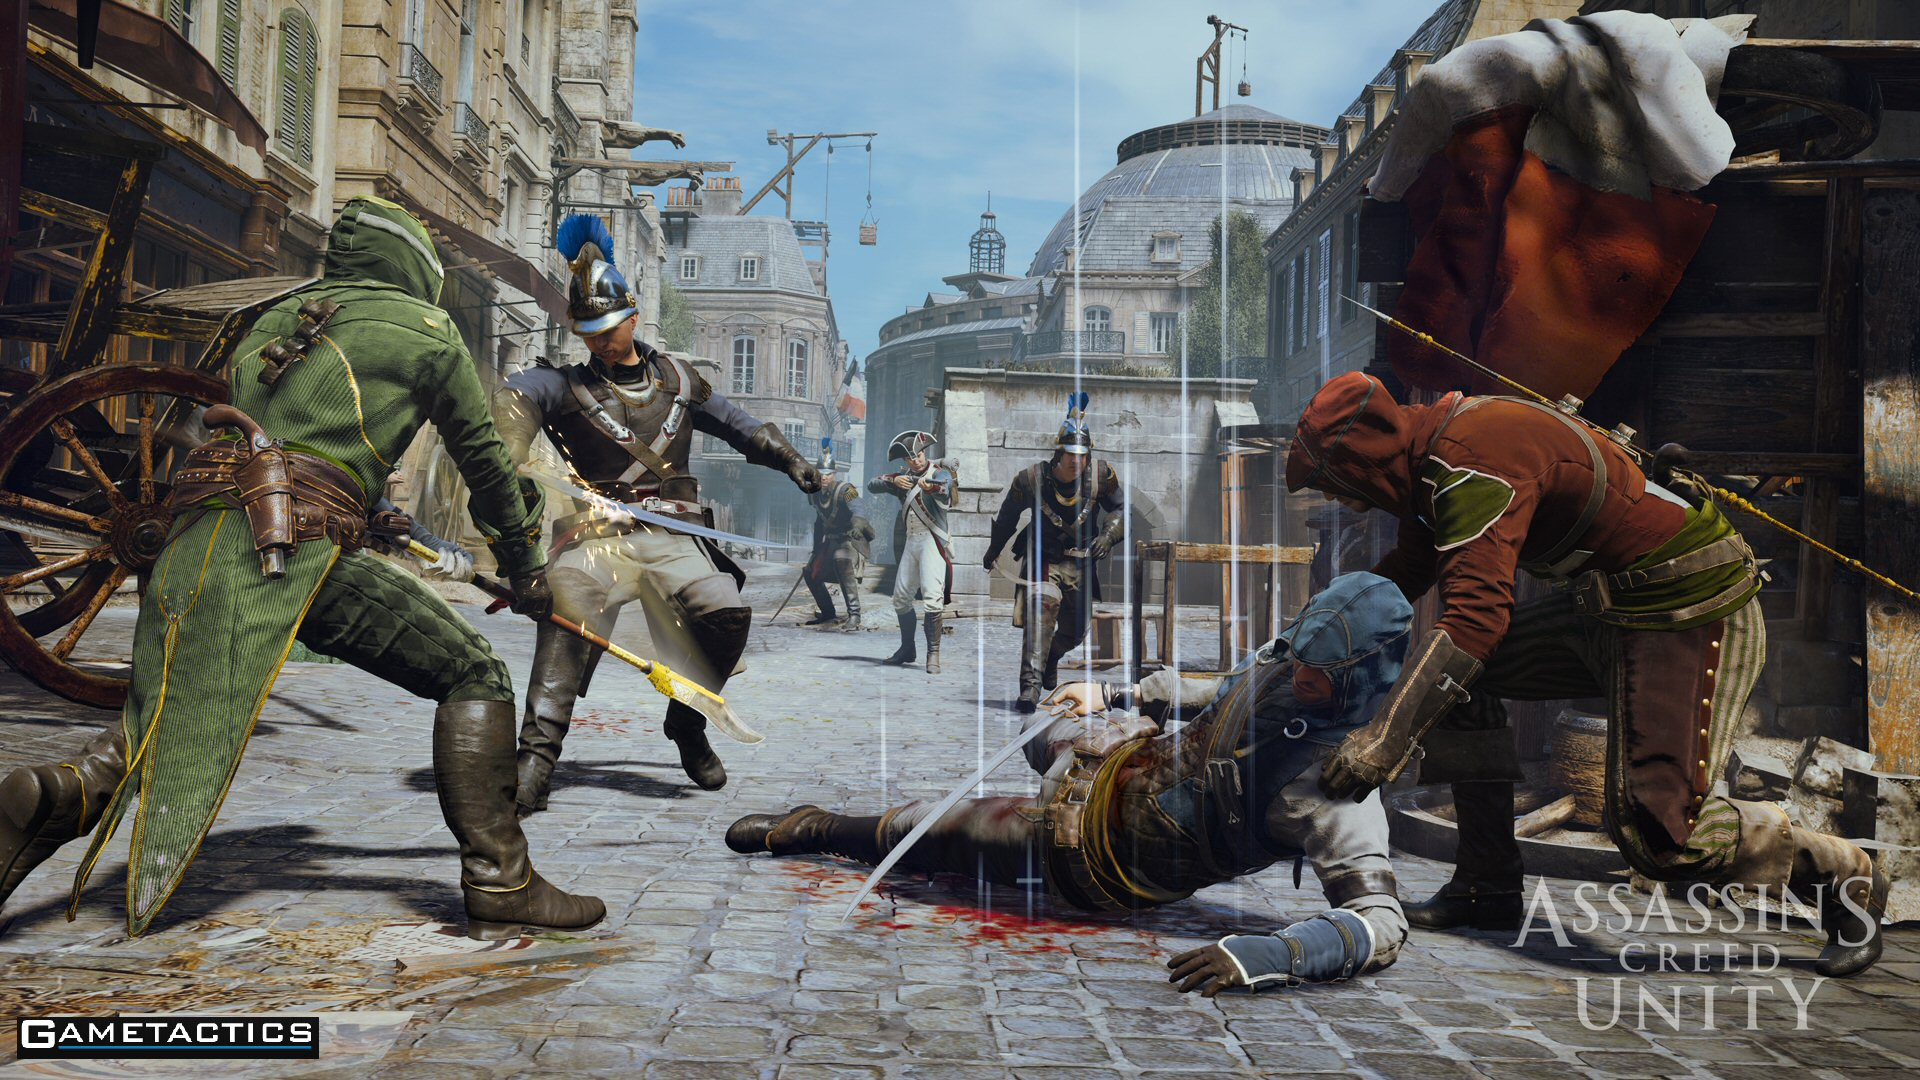 New Assassin's Creed Unity Multiplayer Screenshots Released